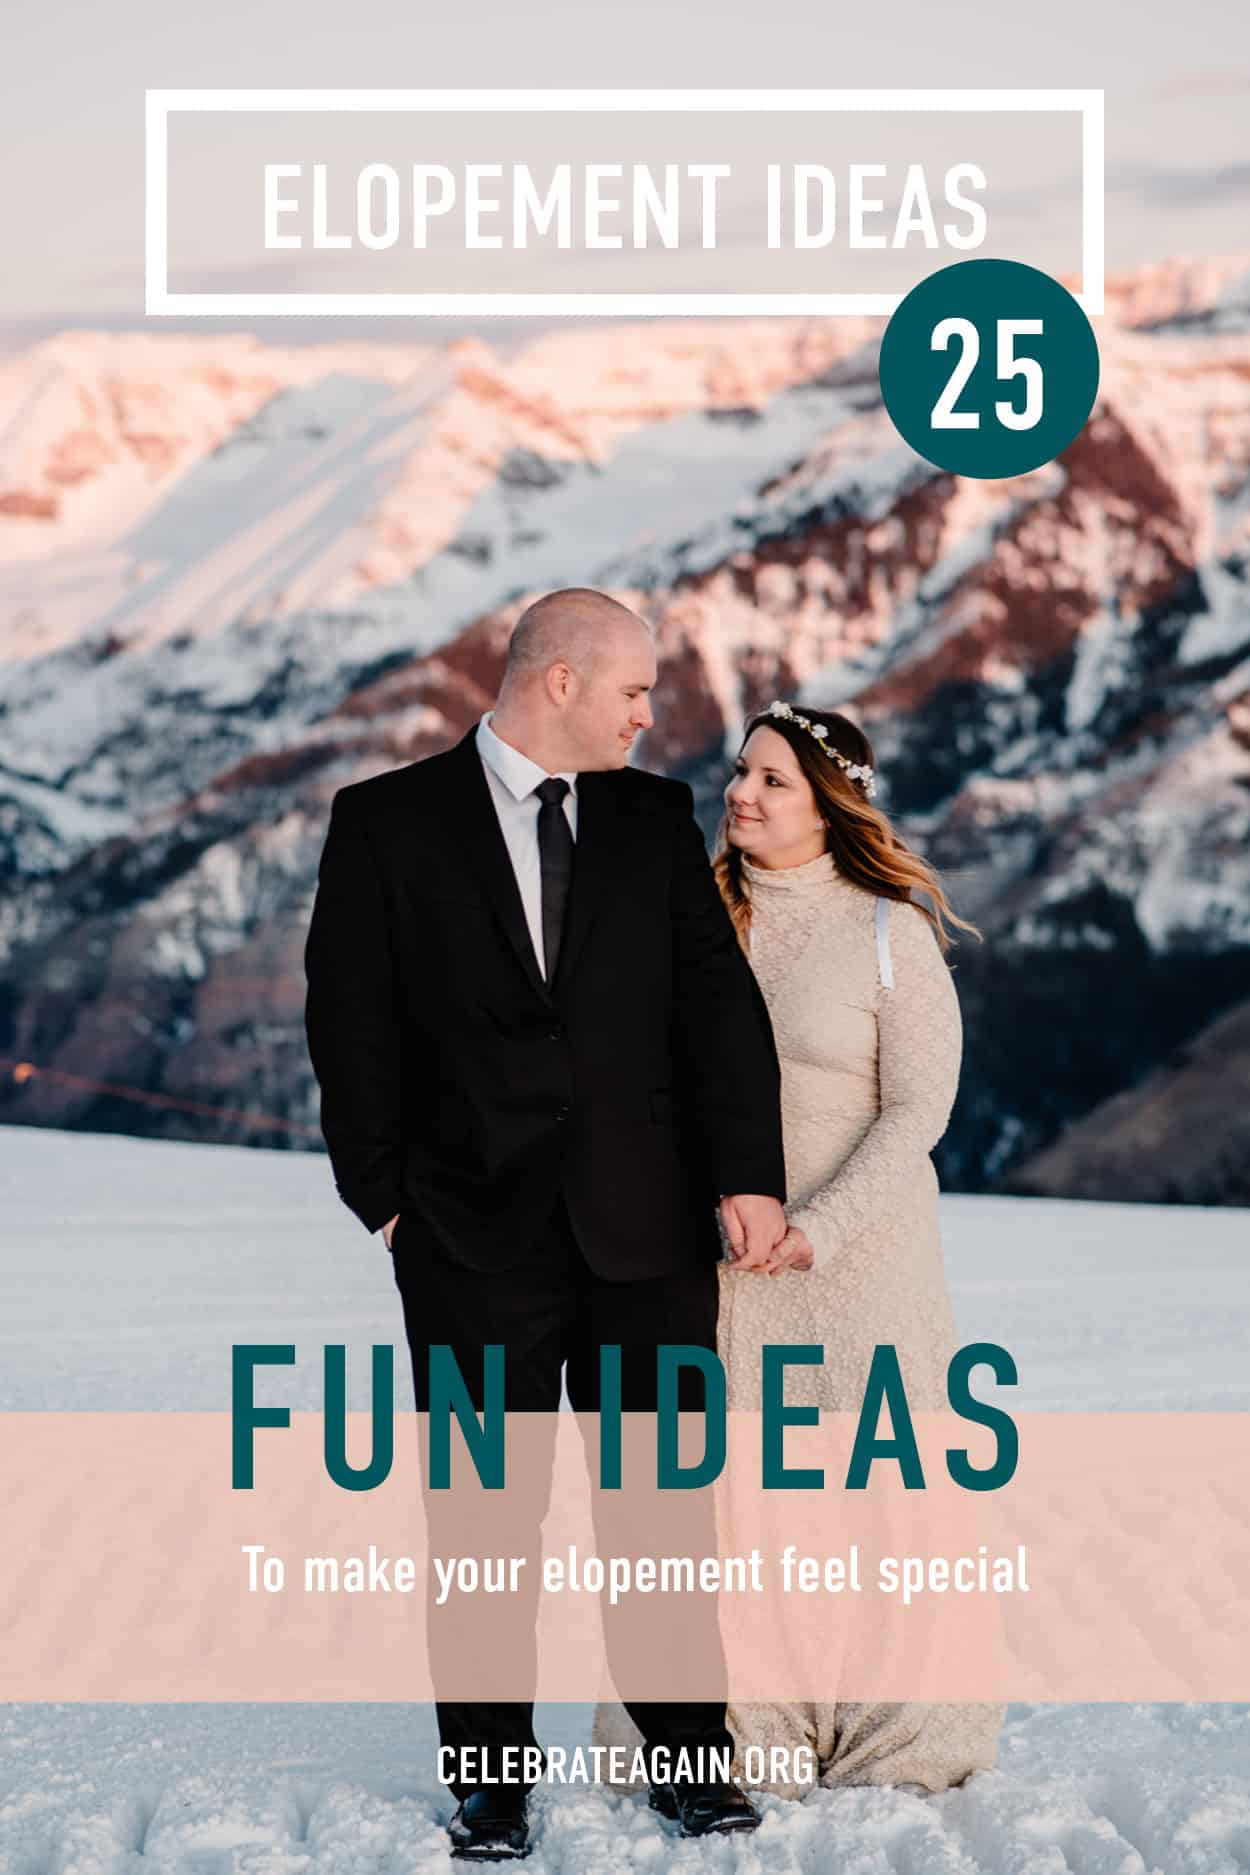 """""""elopement ideas 25 fun ideas for how to make your elopement special"""" couples standing on top of a mountain at sunset"""